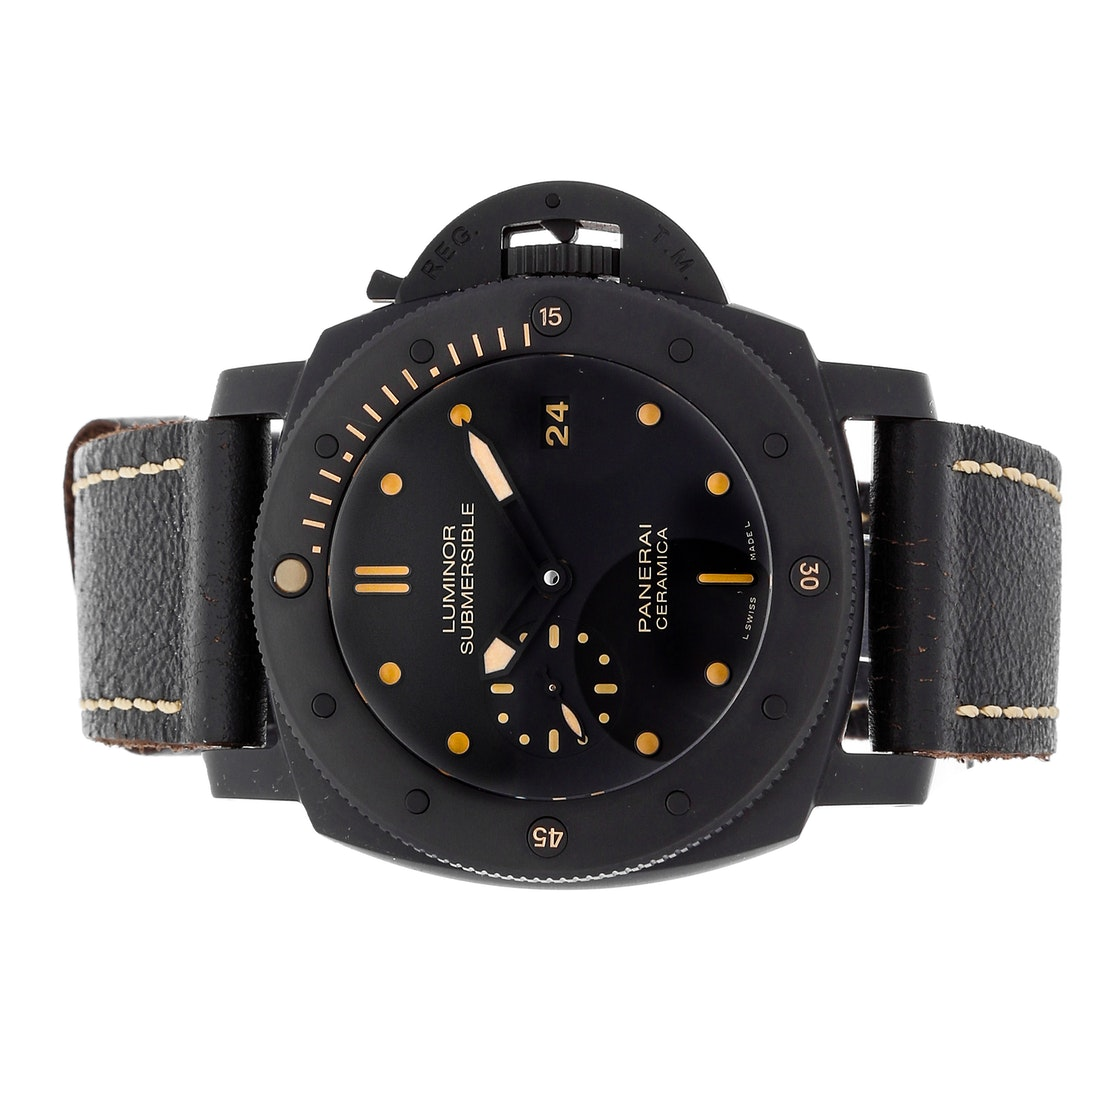 Panerai Luminor Submersible 1950 3-Days Limited Edition PAM 508